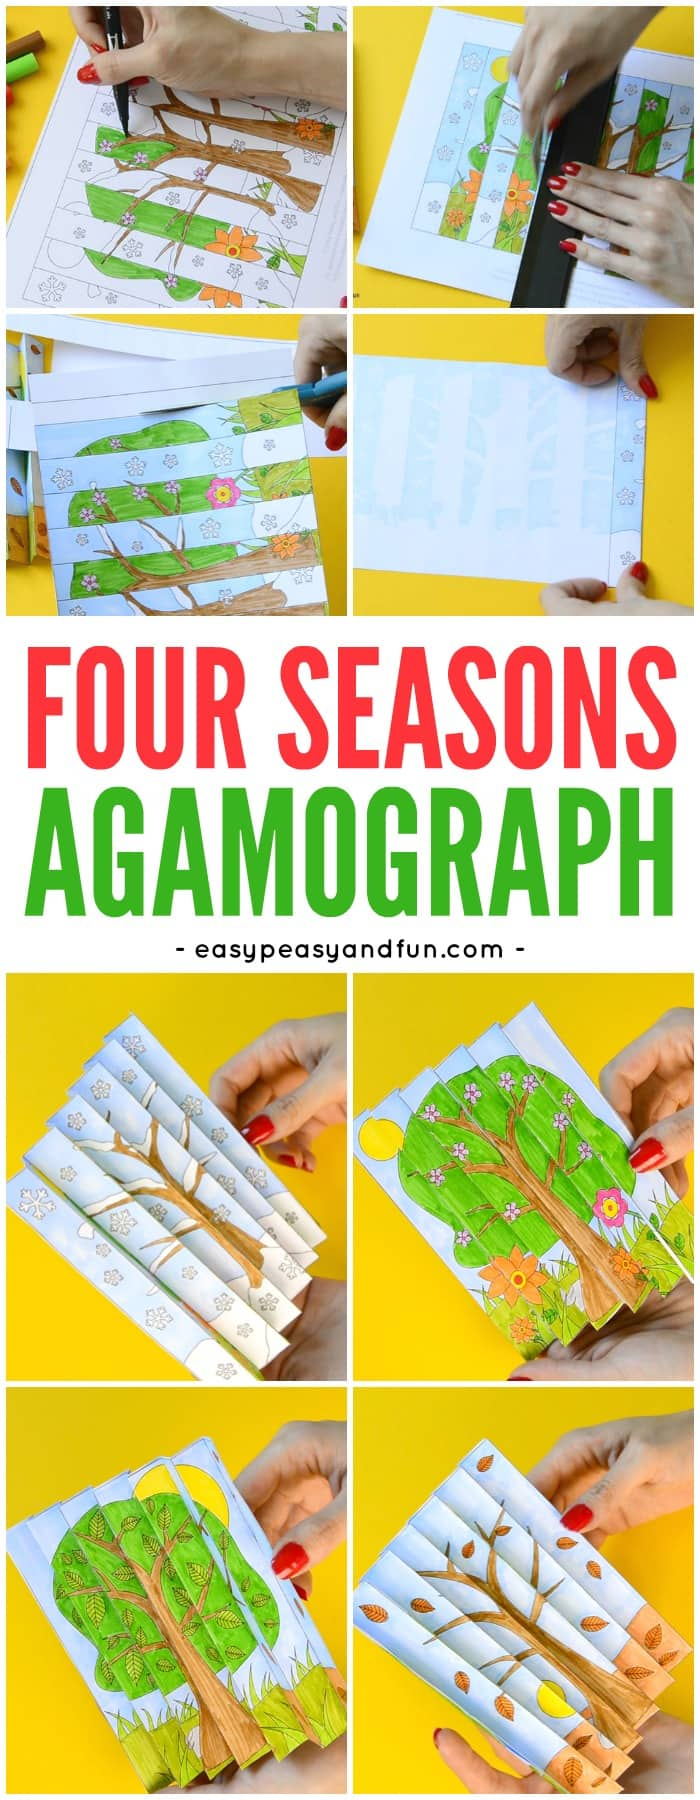 Four Seasons Agamograph Template - Easy Peasy and Fun